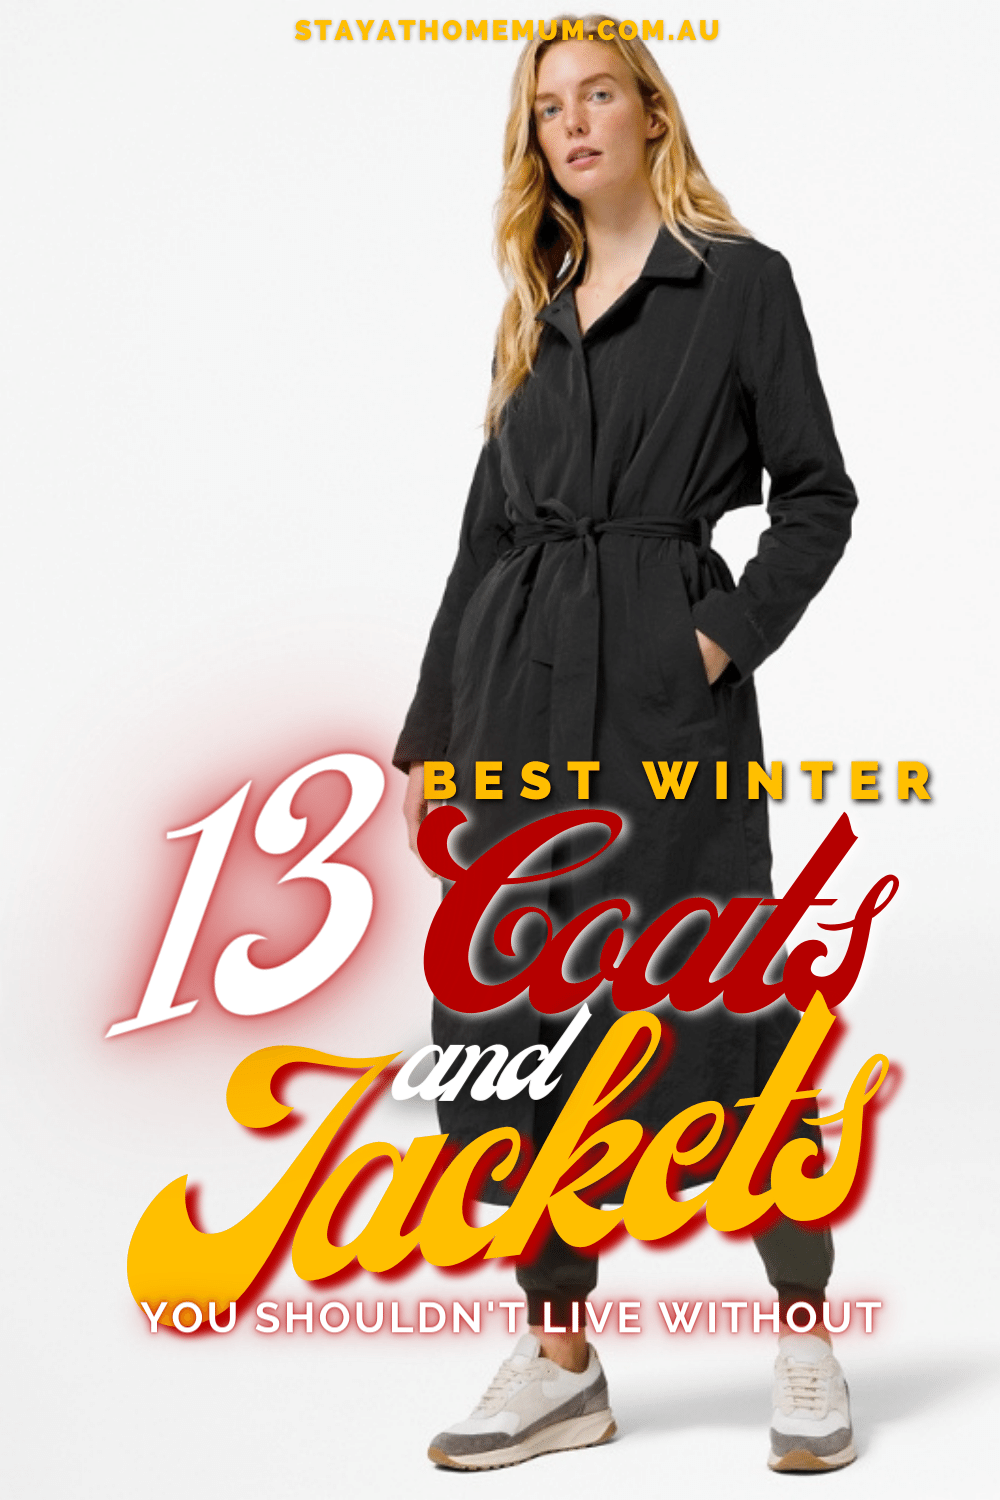 13 Best Winter Coats and Jackets You Shouldn't Live Without | Stay At Home Mum